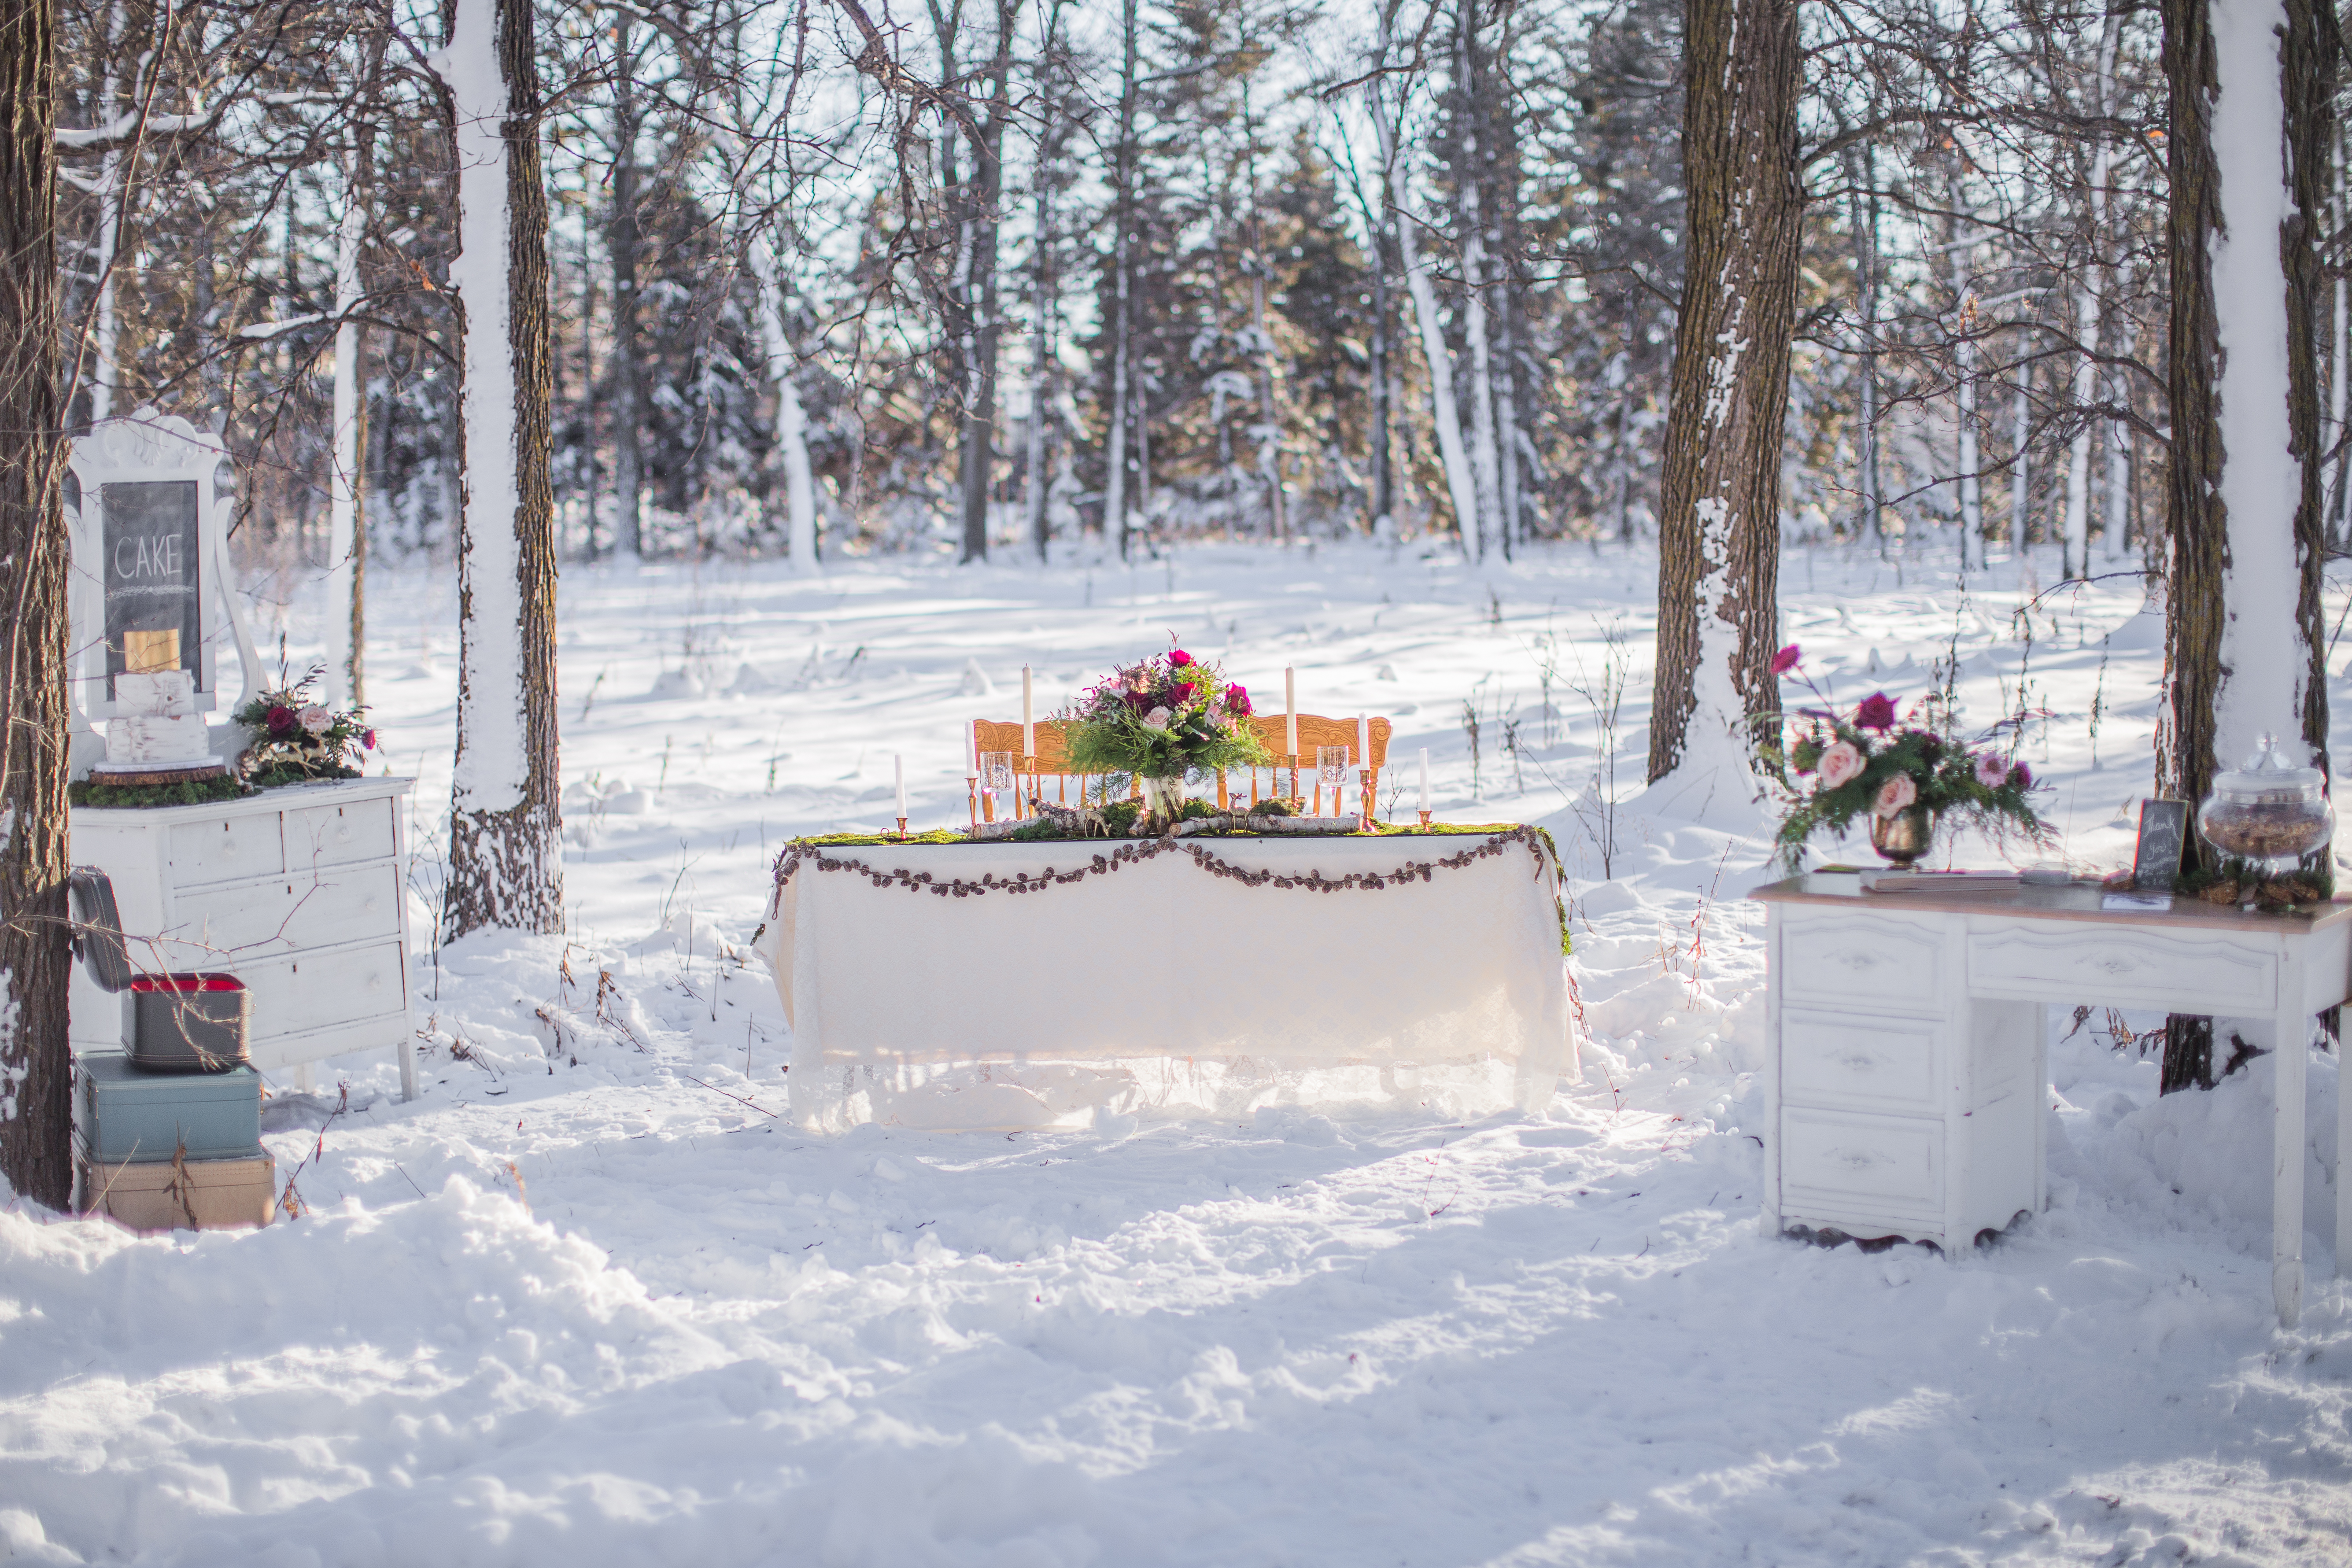 Vintage winter wedding in the forest